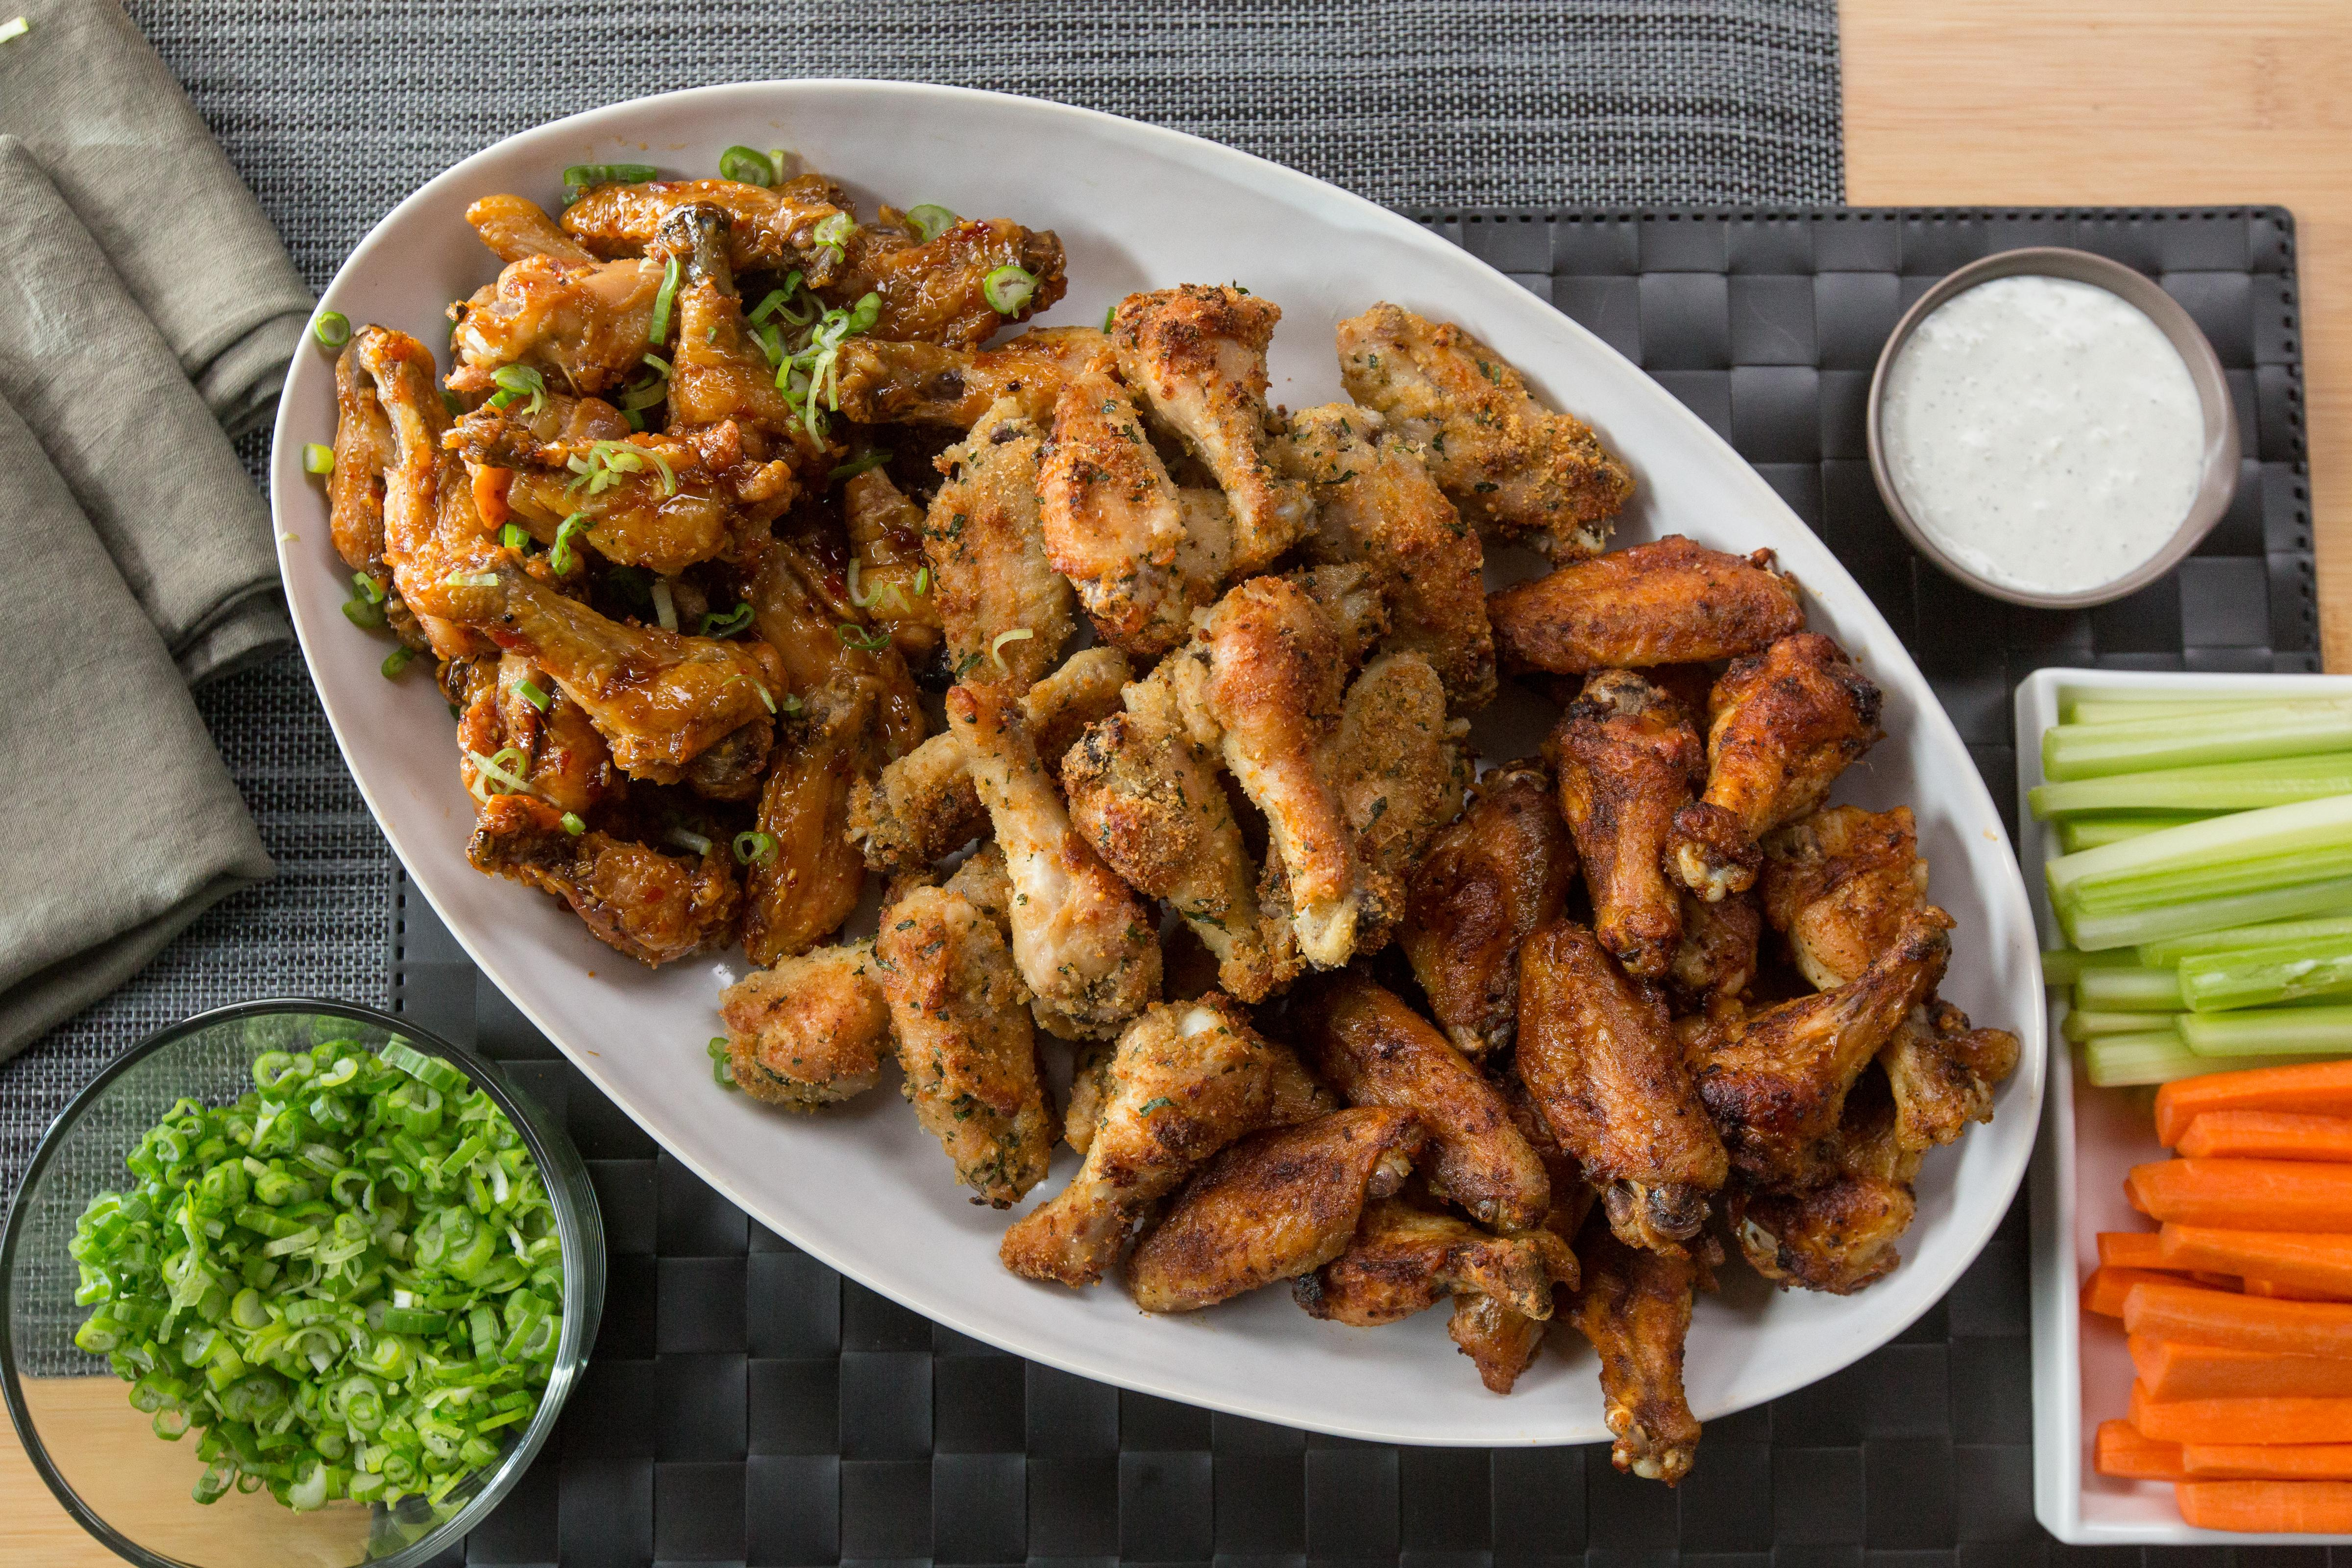 Try these 3 unique twists on chicken wings for game day